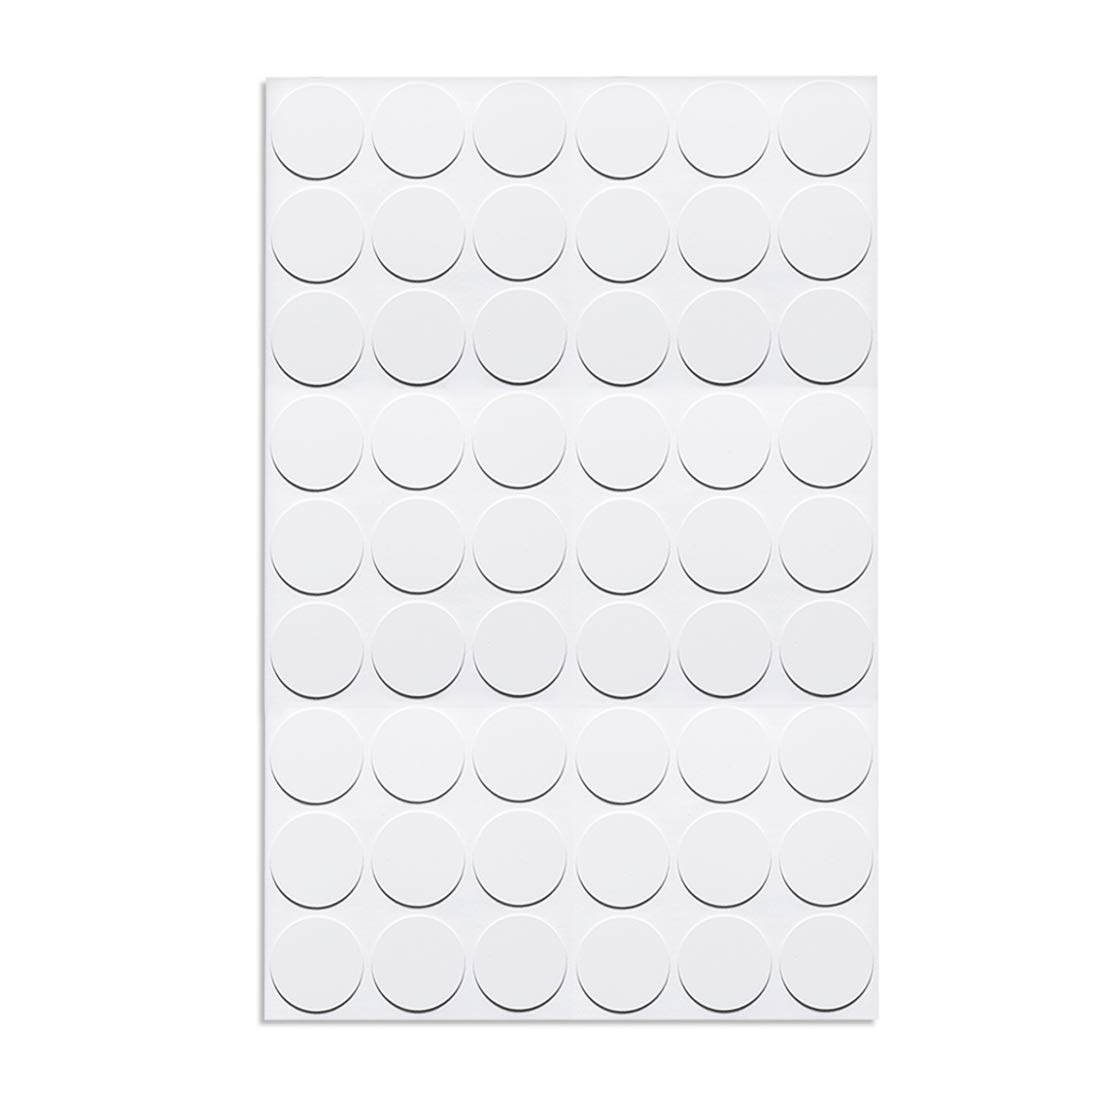 uxcell Screw Hole Covers Stickers Textured Plastic Self Adhesive Stickers for Wood Furniture Cabinet Shelve Plate 21mm Dia 54pcs in 1Sheet White